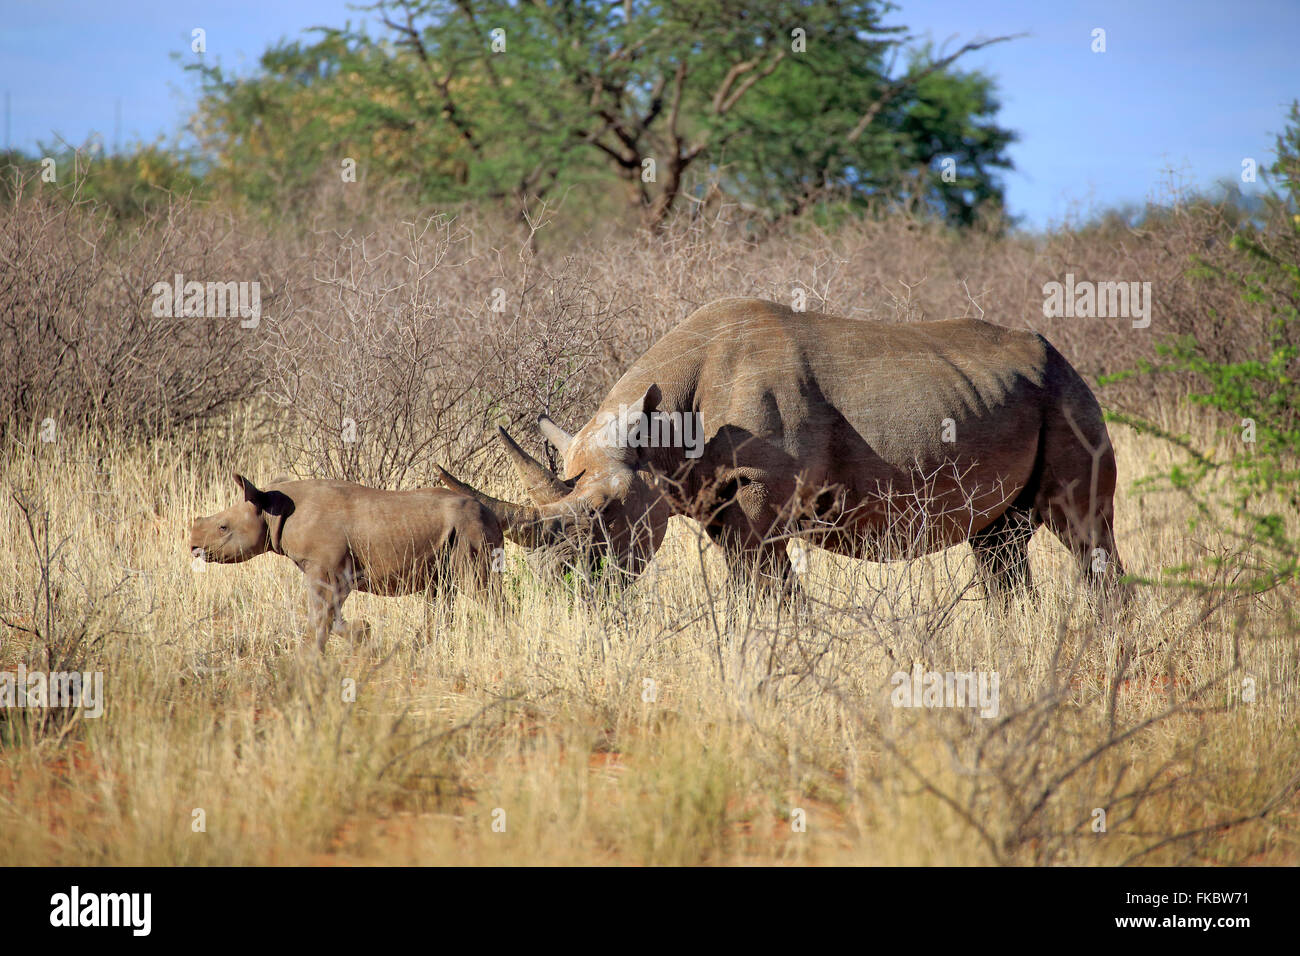 Black Rhinoceros, hook-lipped rhinoceros, adult female with young, Tswalu Game Reserve, Kalahari, Northern Cape, - Stock Image